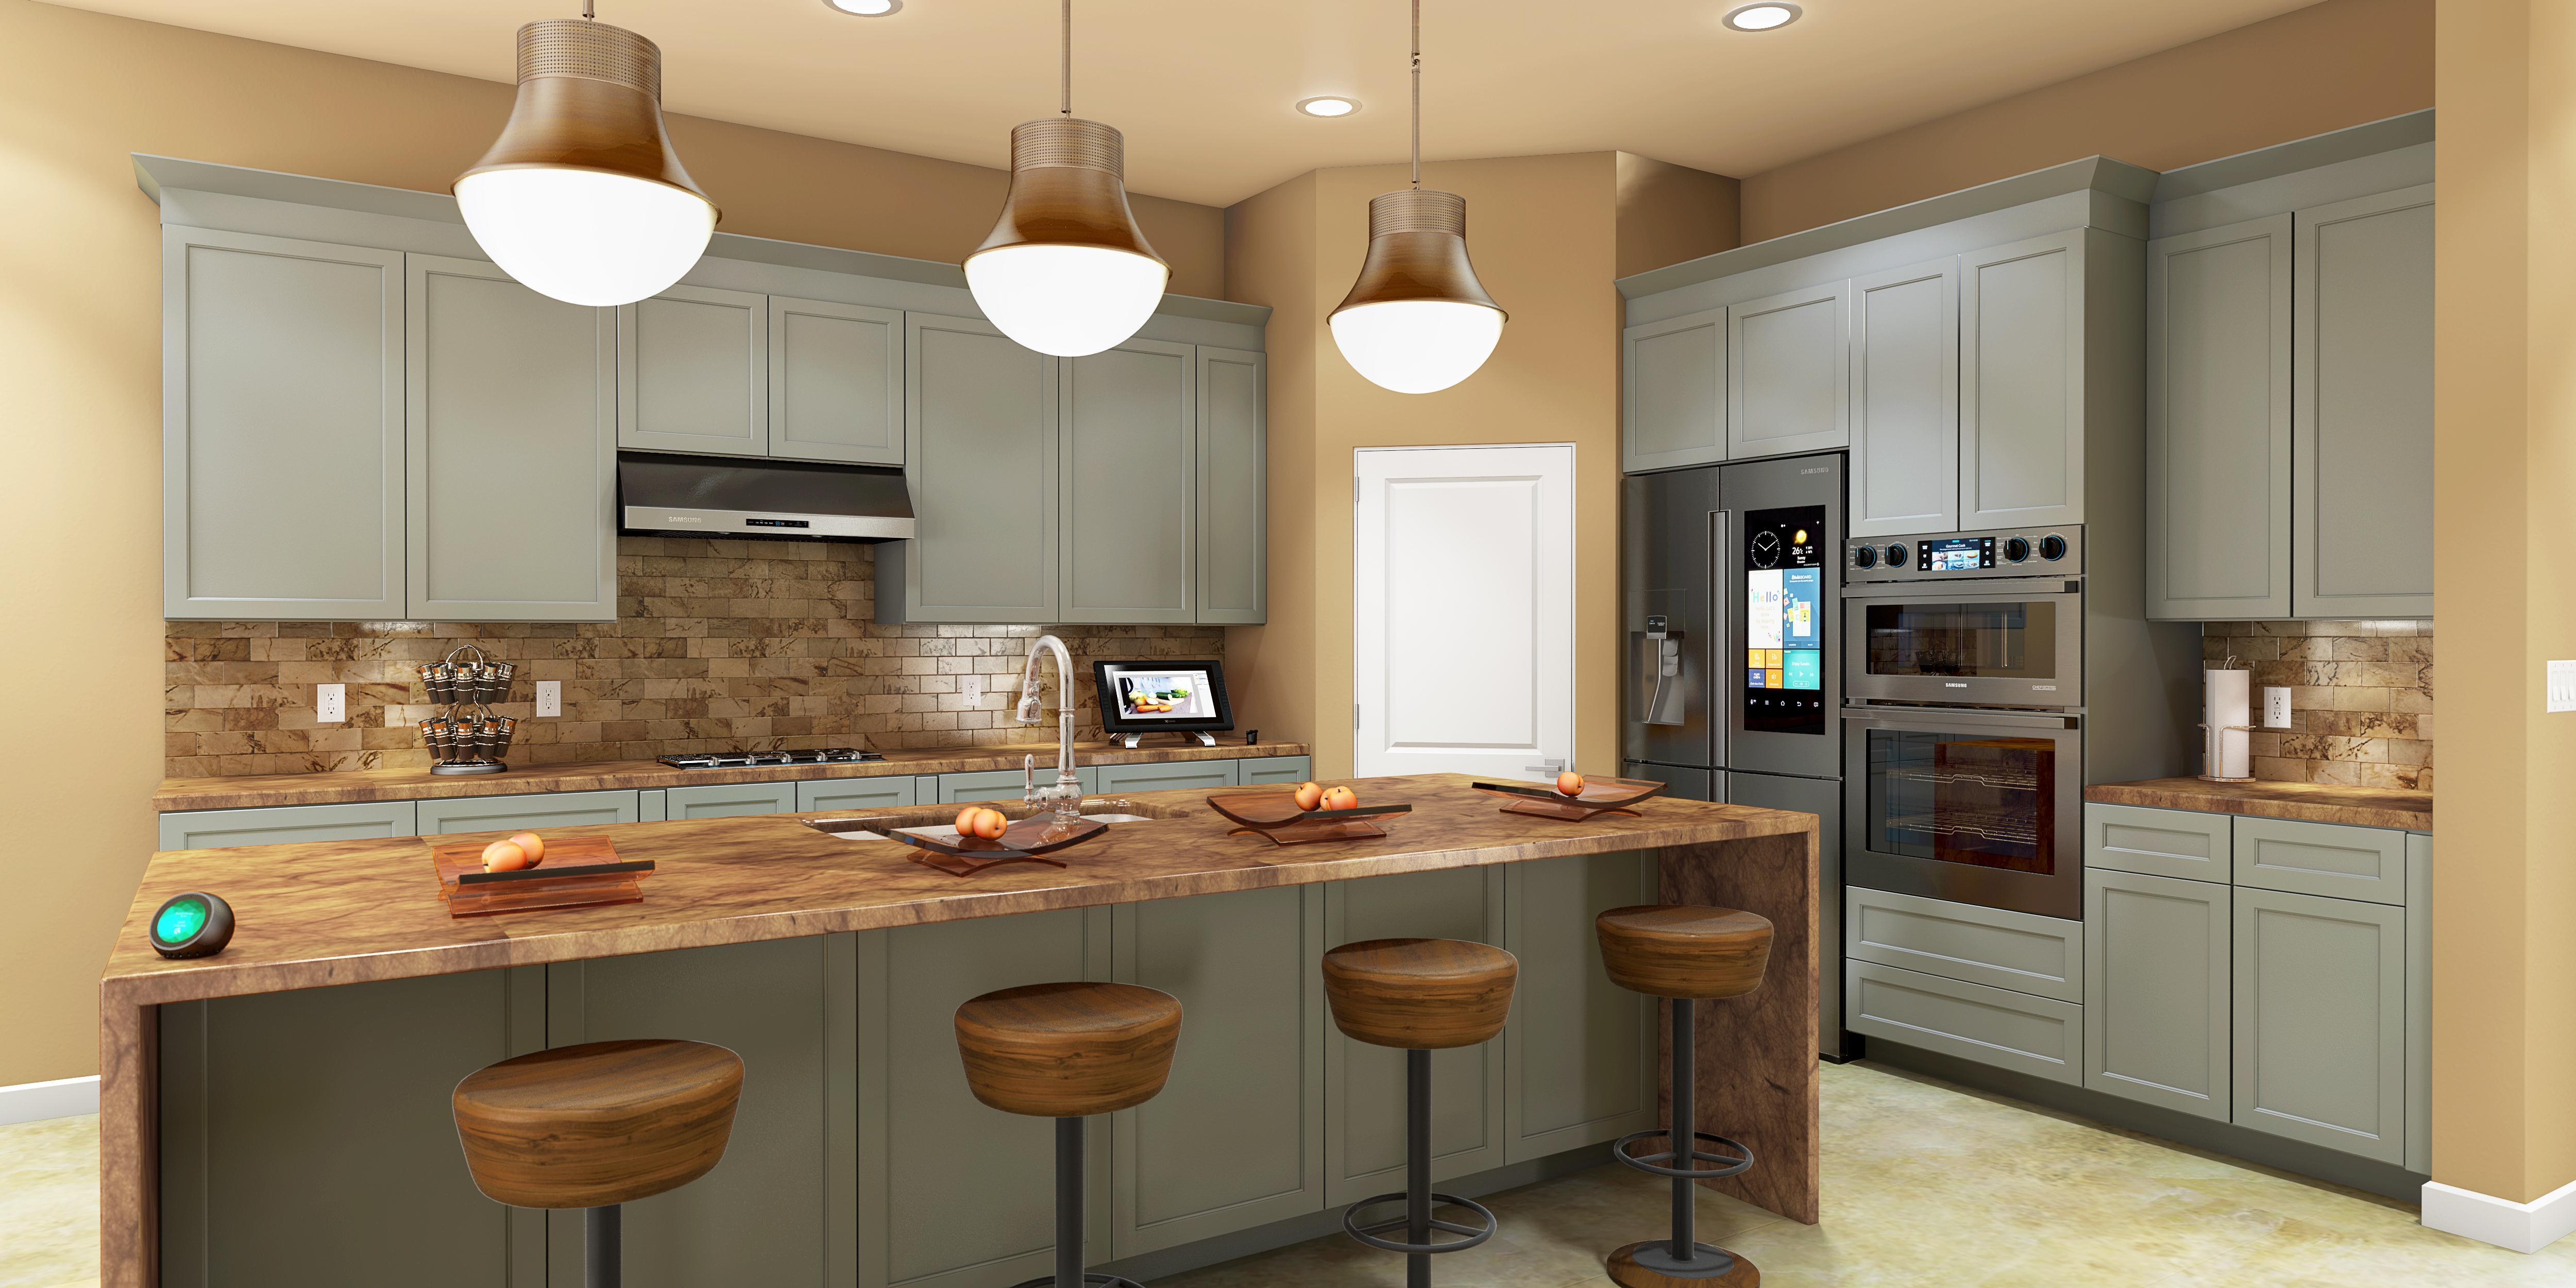 Kitchen featured in the Rosewood By Fairfield Homes in Tucson, AZ